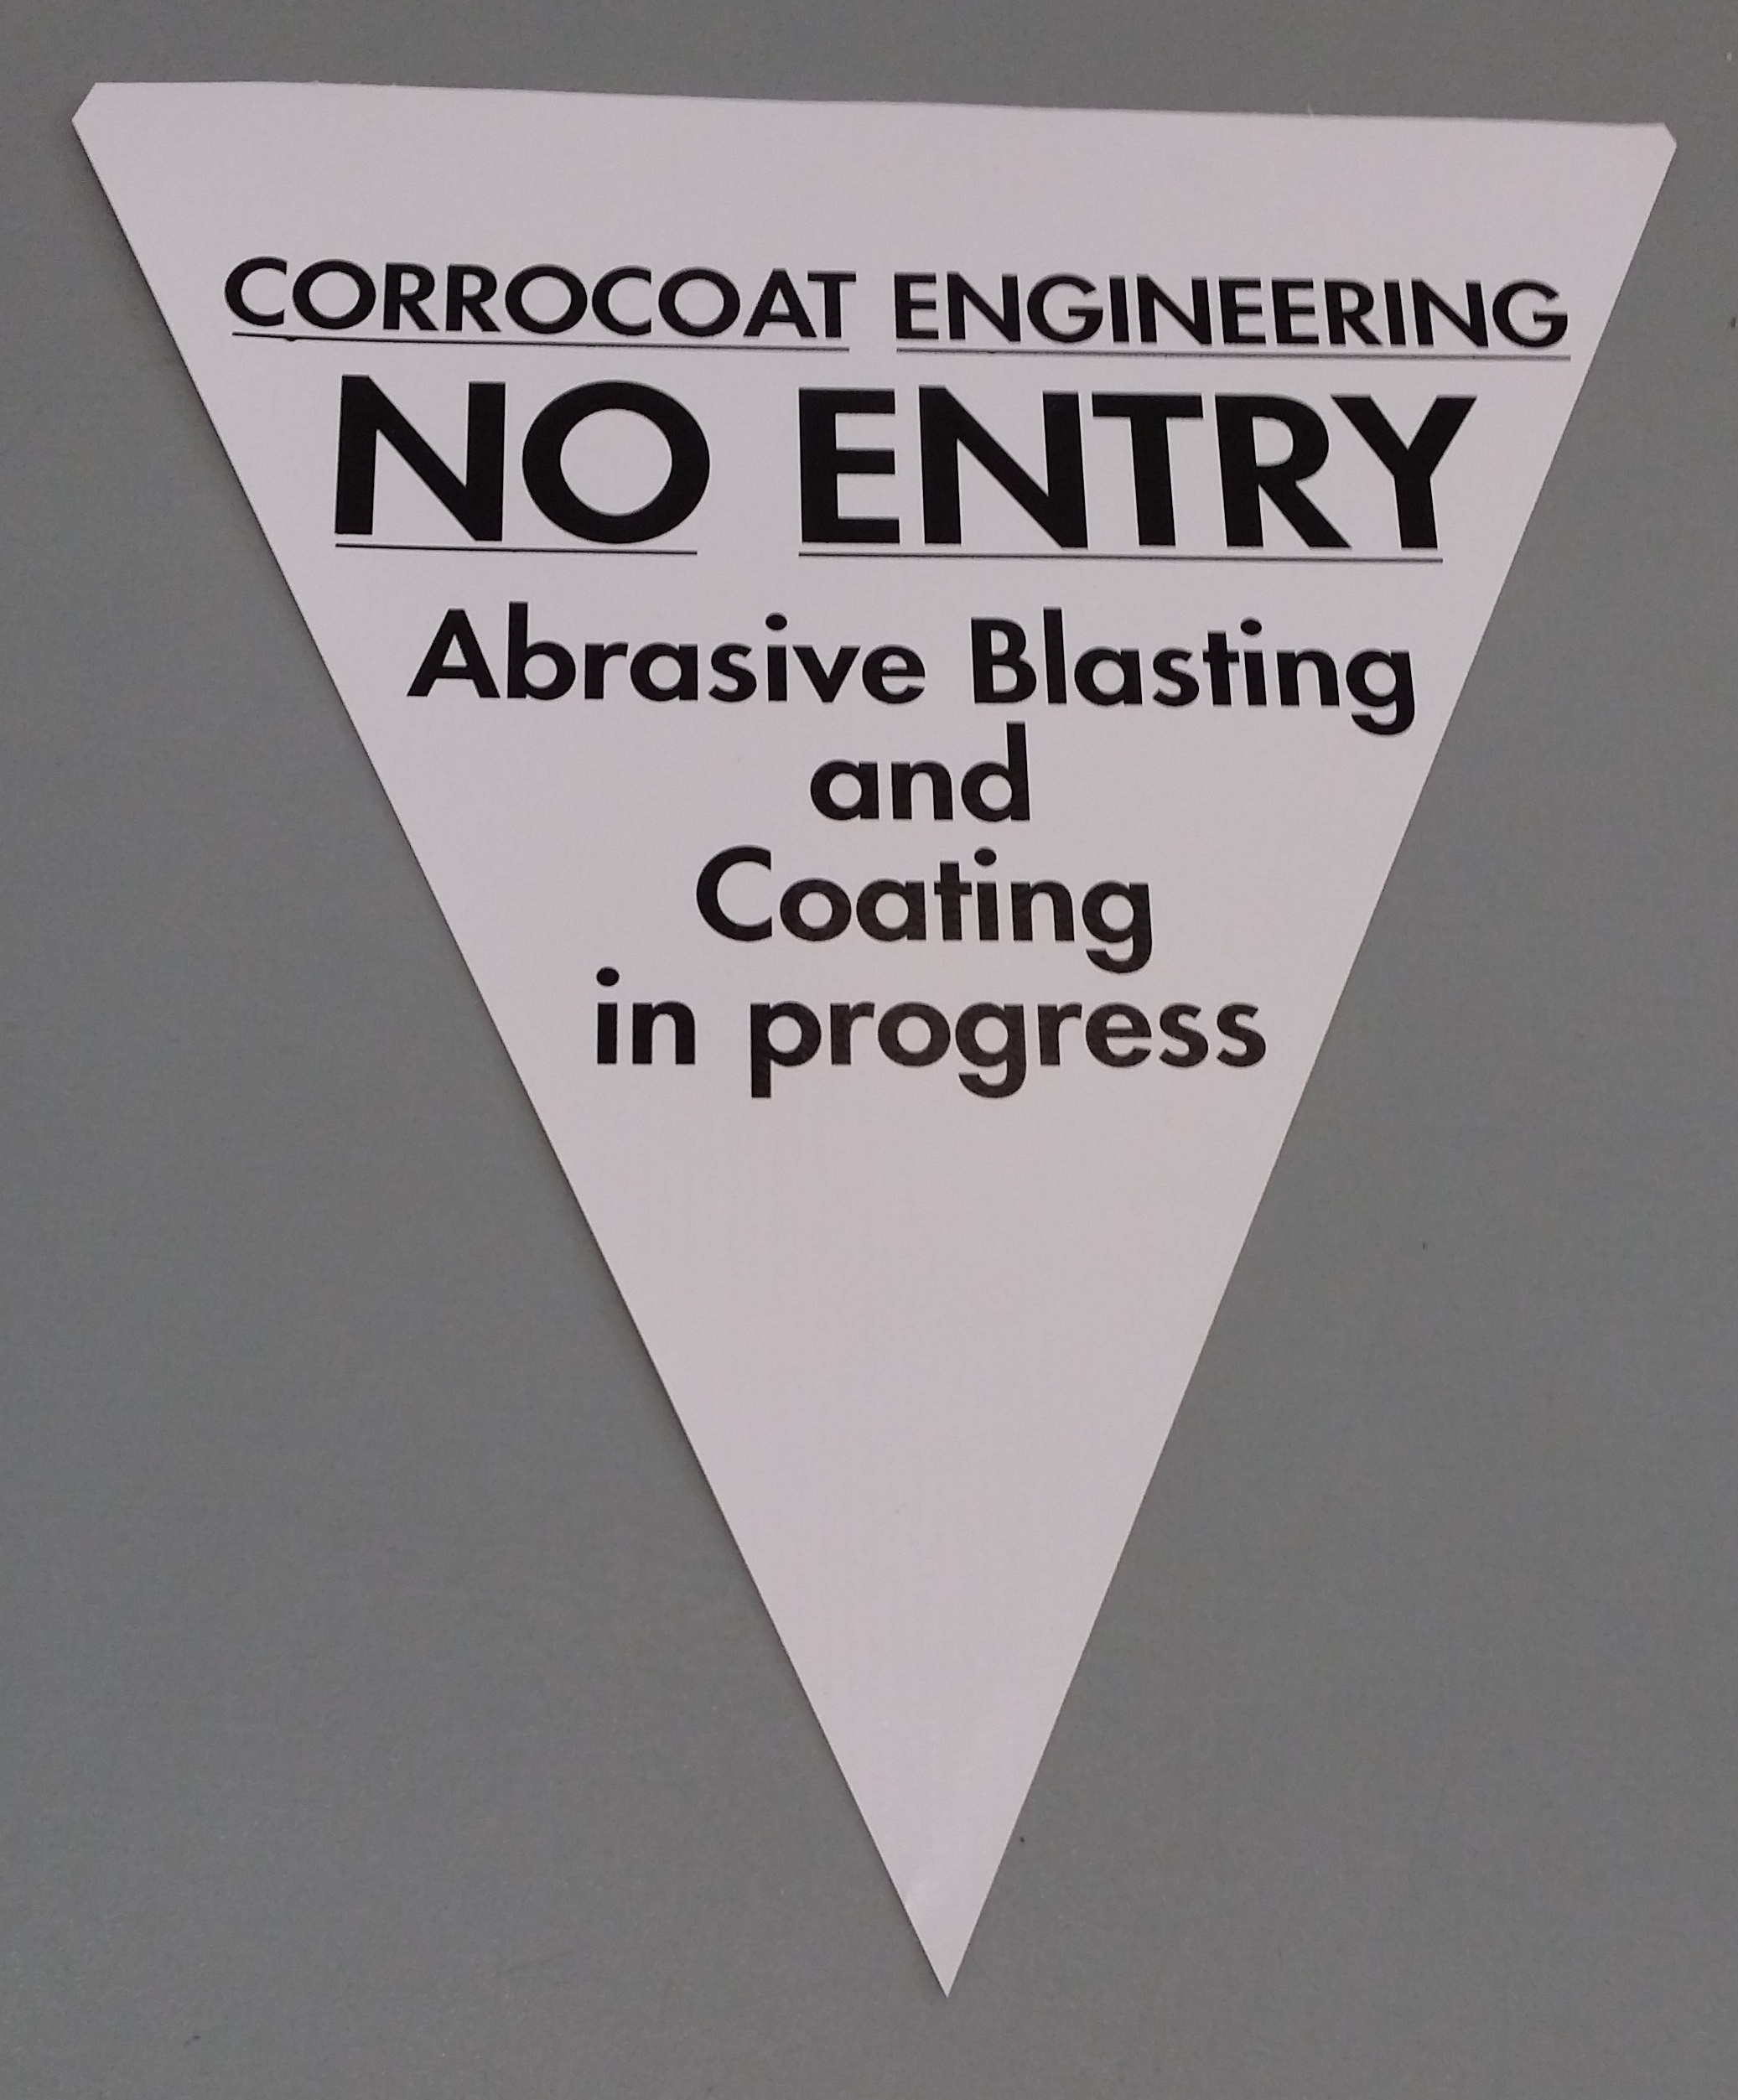 Corrocoat Engineering No Entry (white)